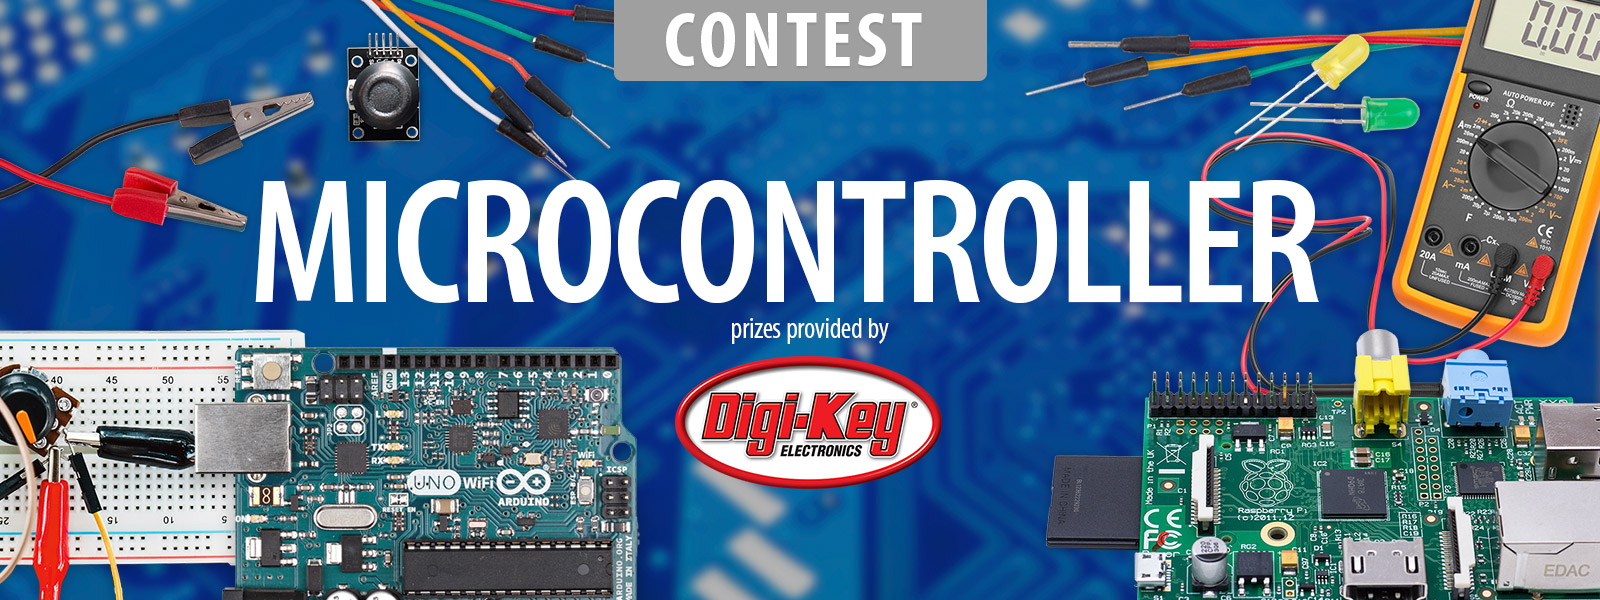 Microcontroller Contest 2017 Or Photo Of Computer Electronic Circuit Cpu Board Breaking Binary Code